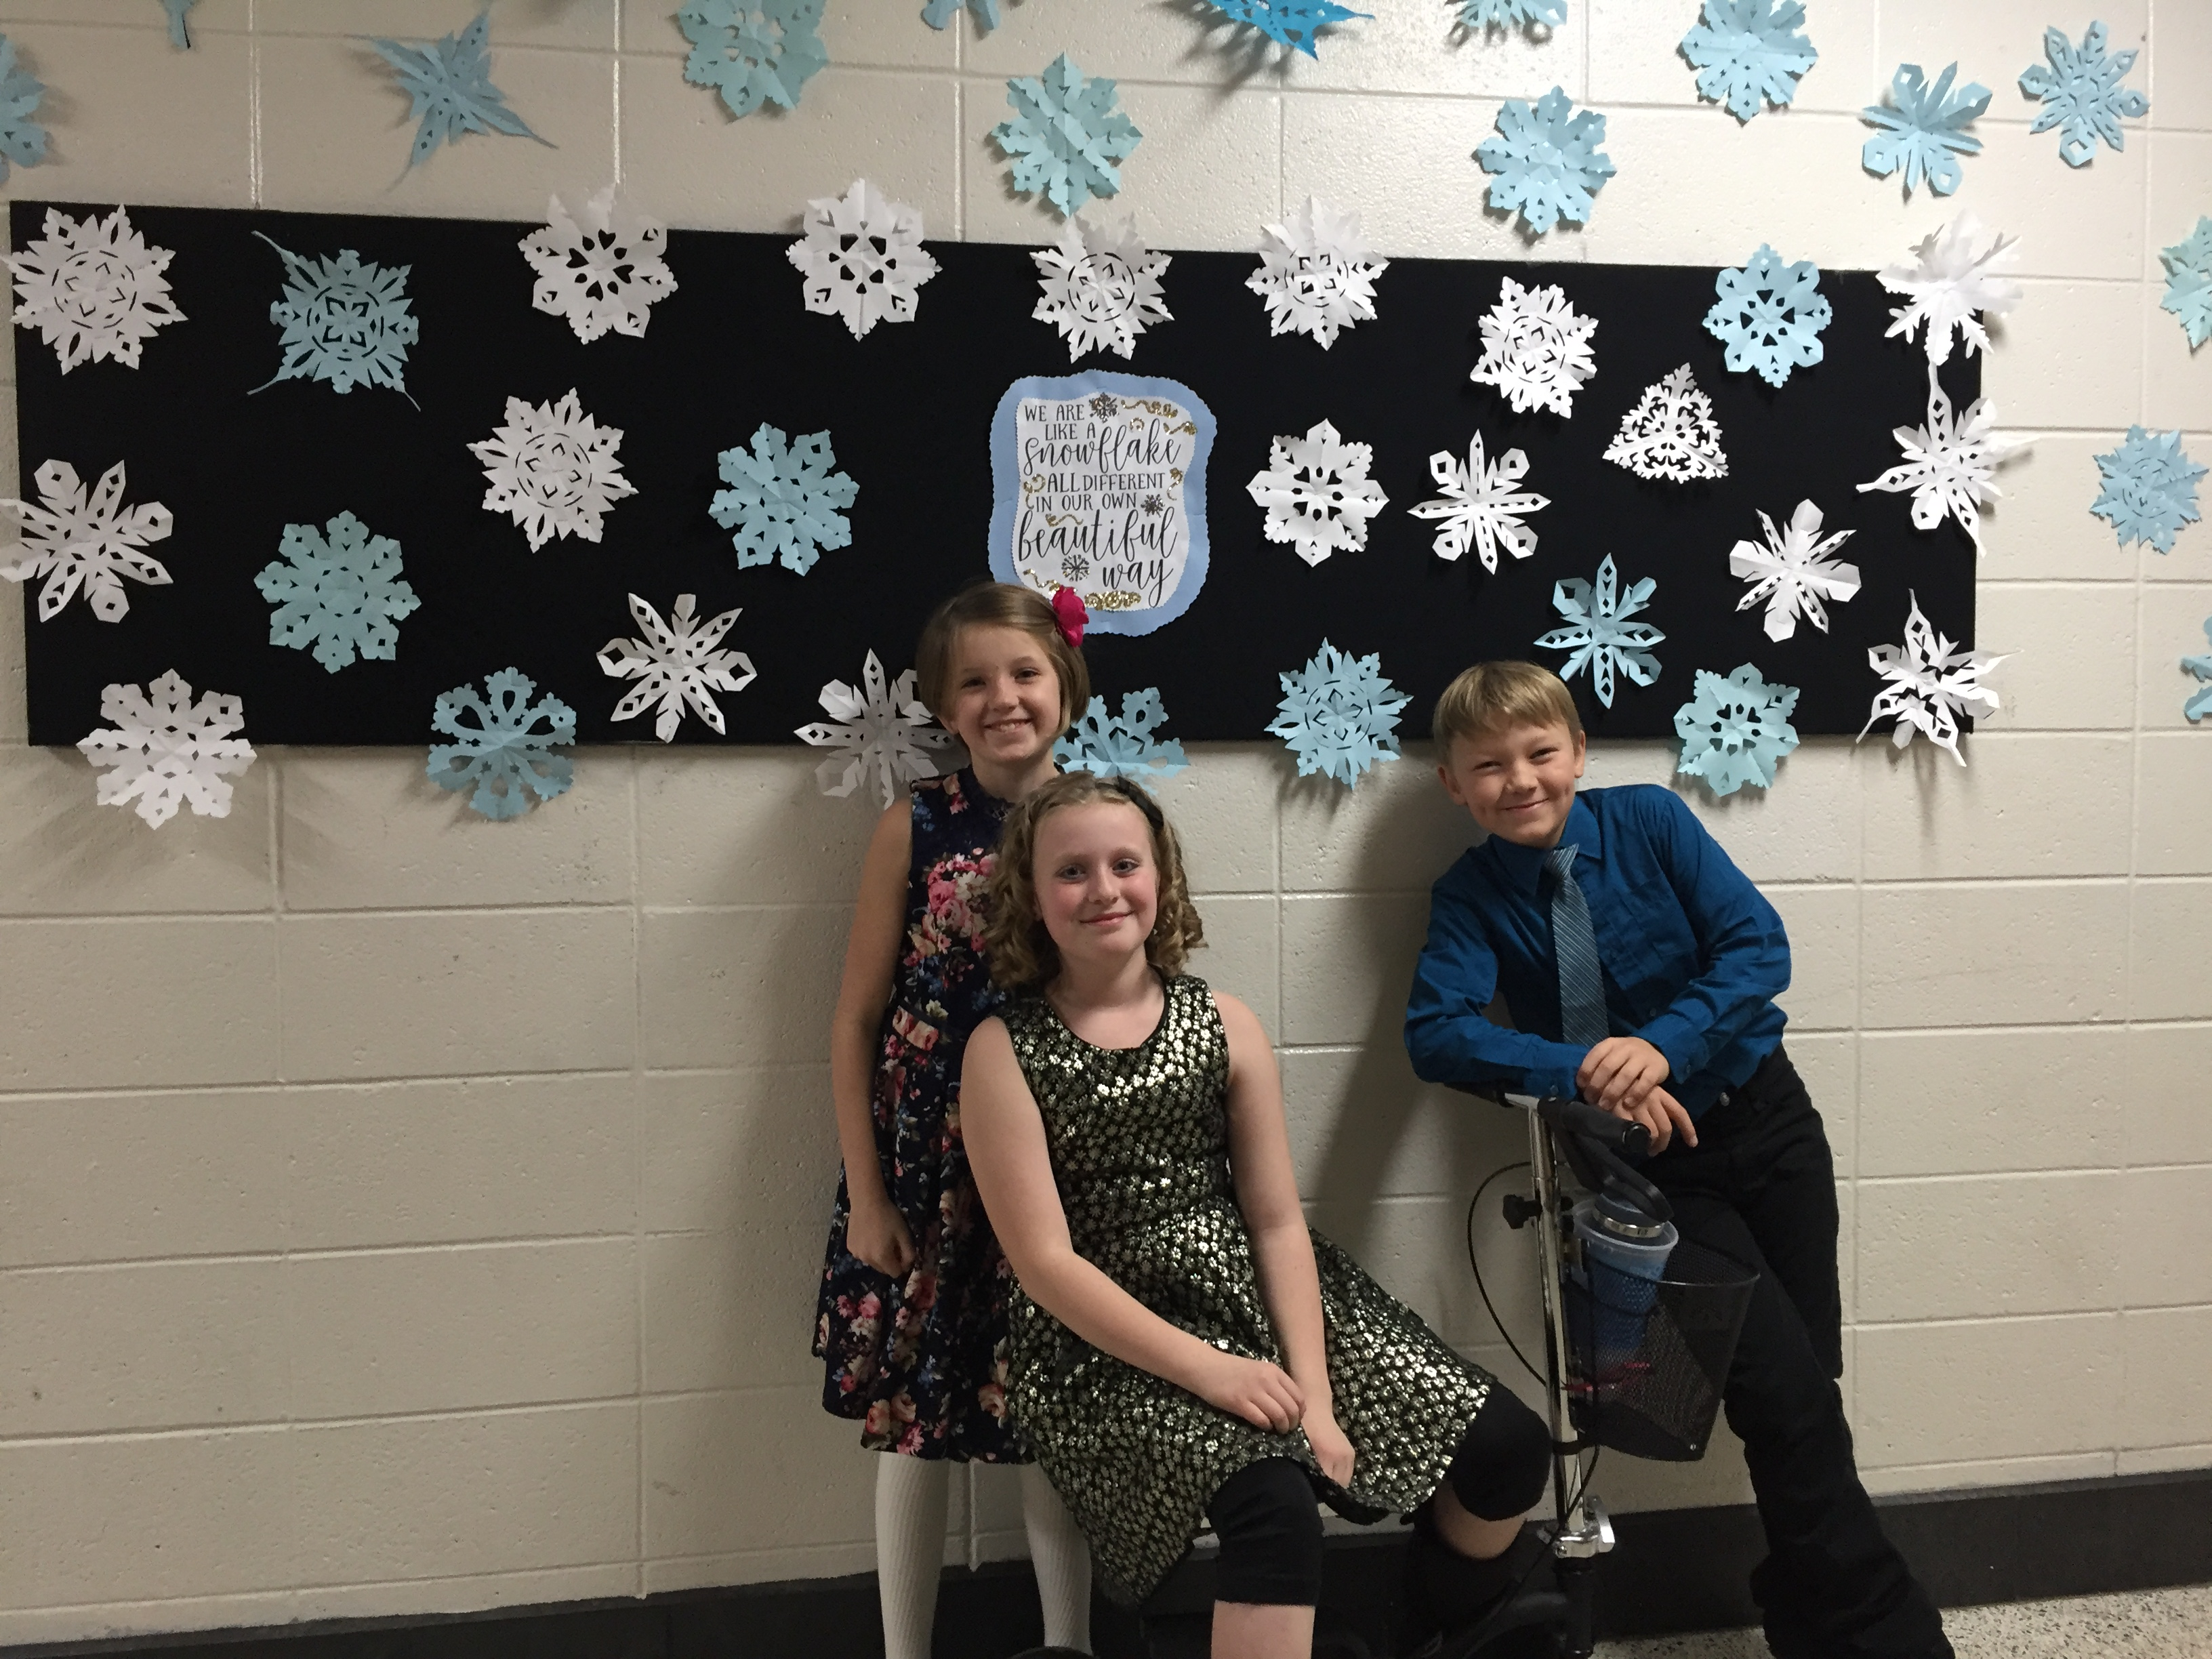 Ready for our winter concert